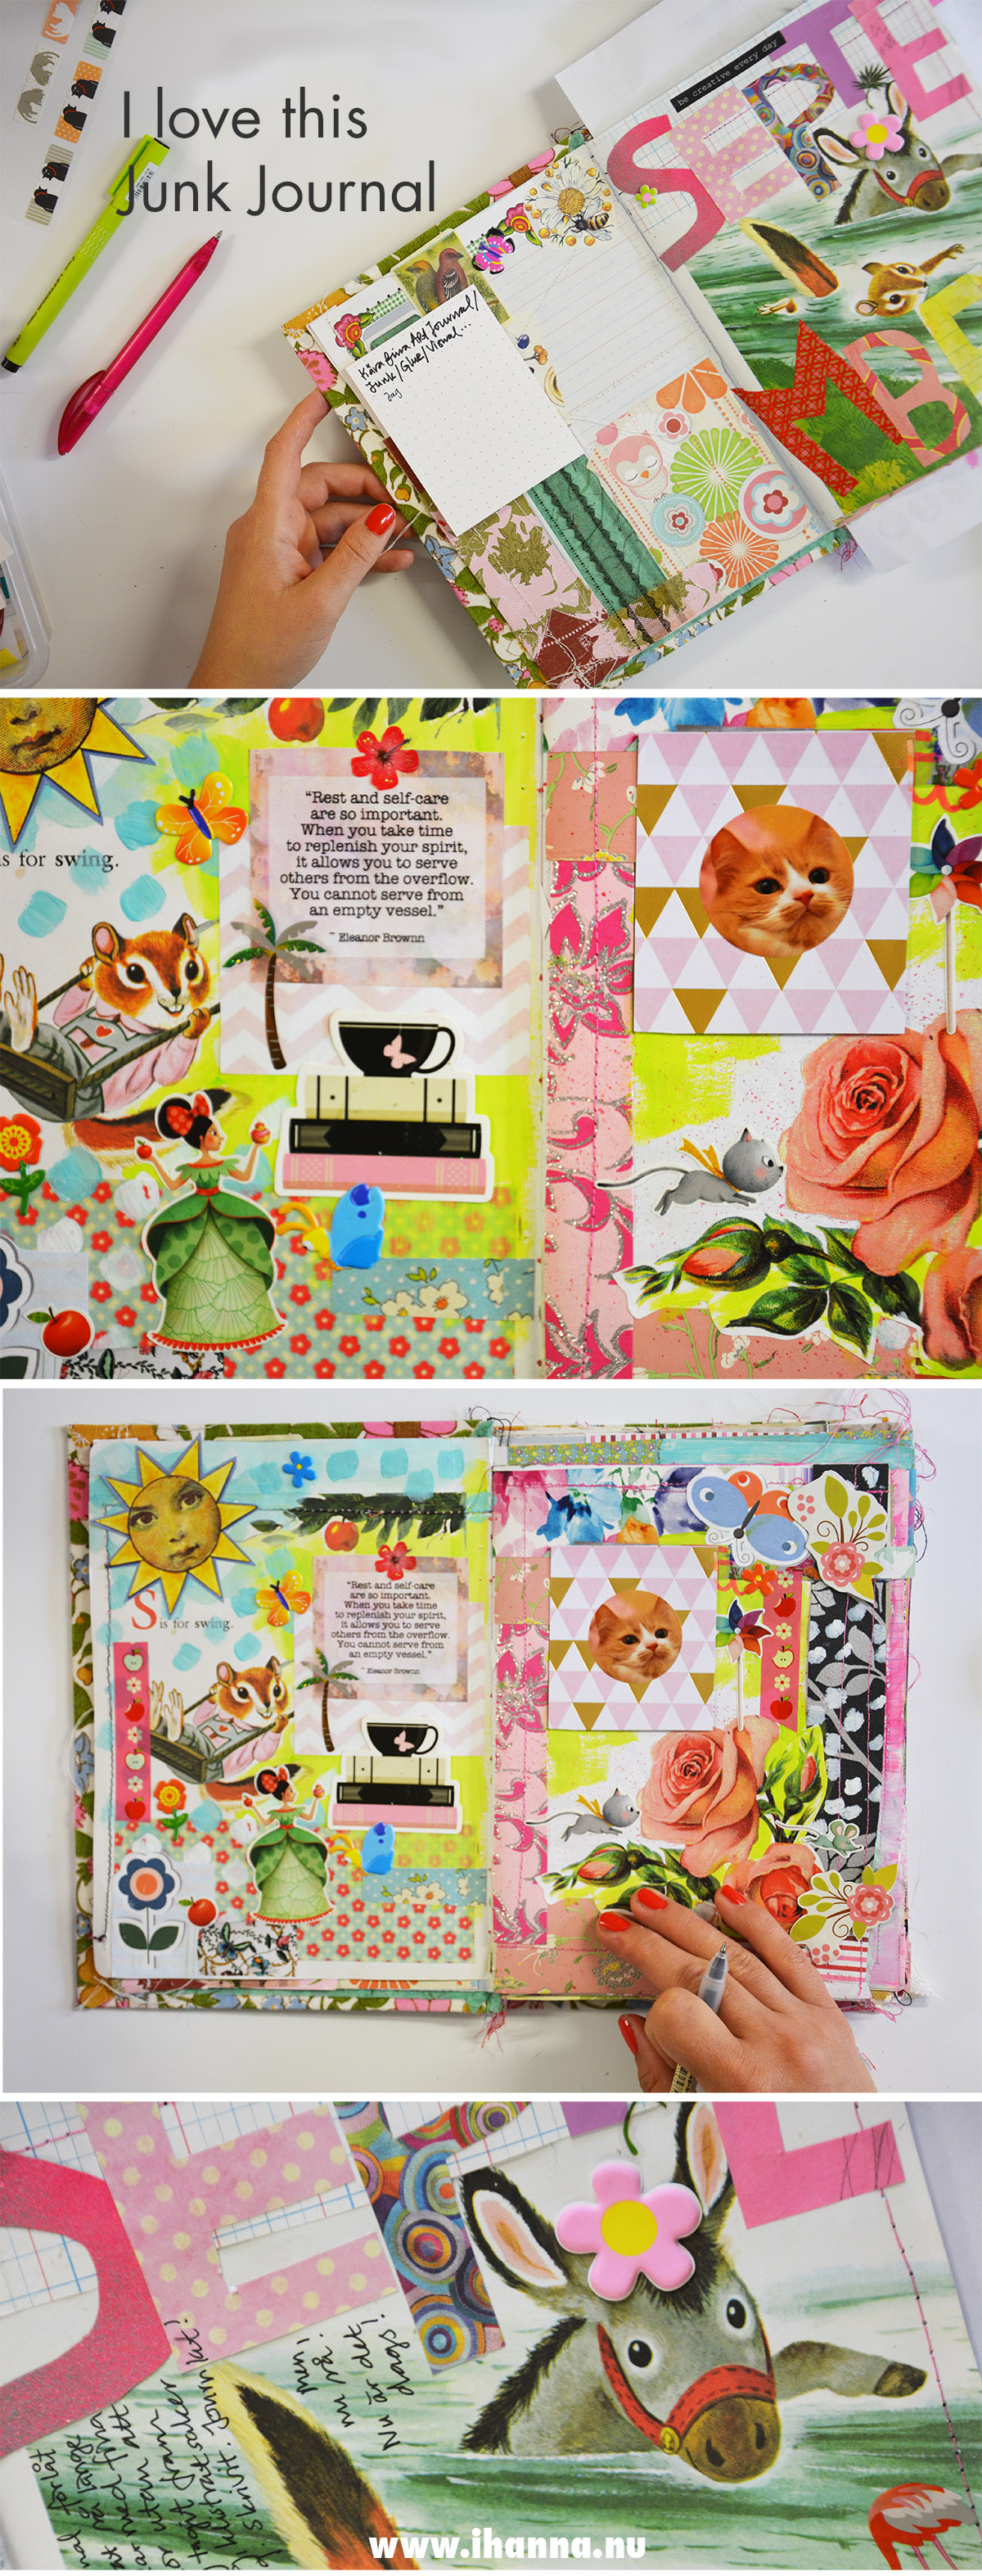 Junk journal process video and blog post by iHanna